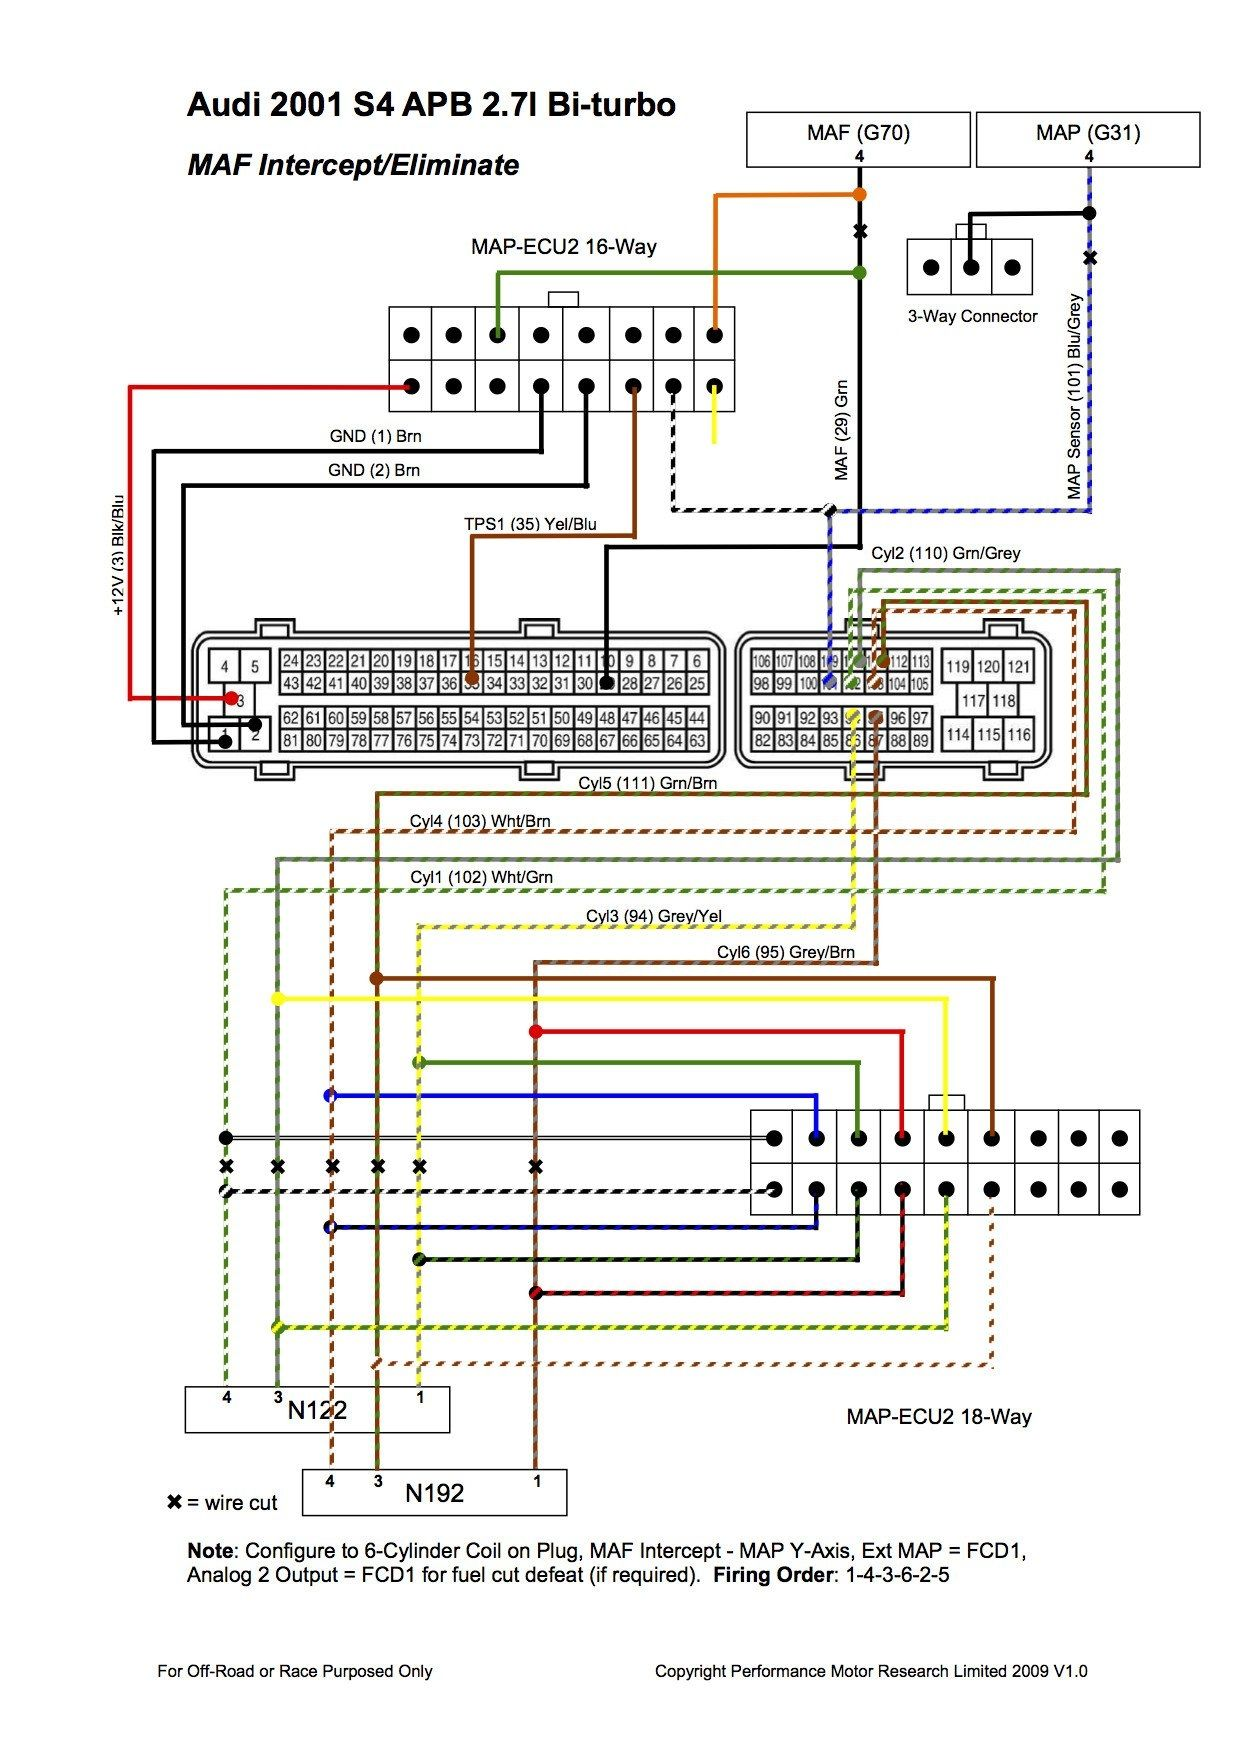 toyota corolla parts diagram dodge ram ignition switch wiring 1996 services in 2009